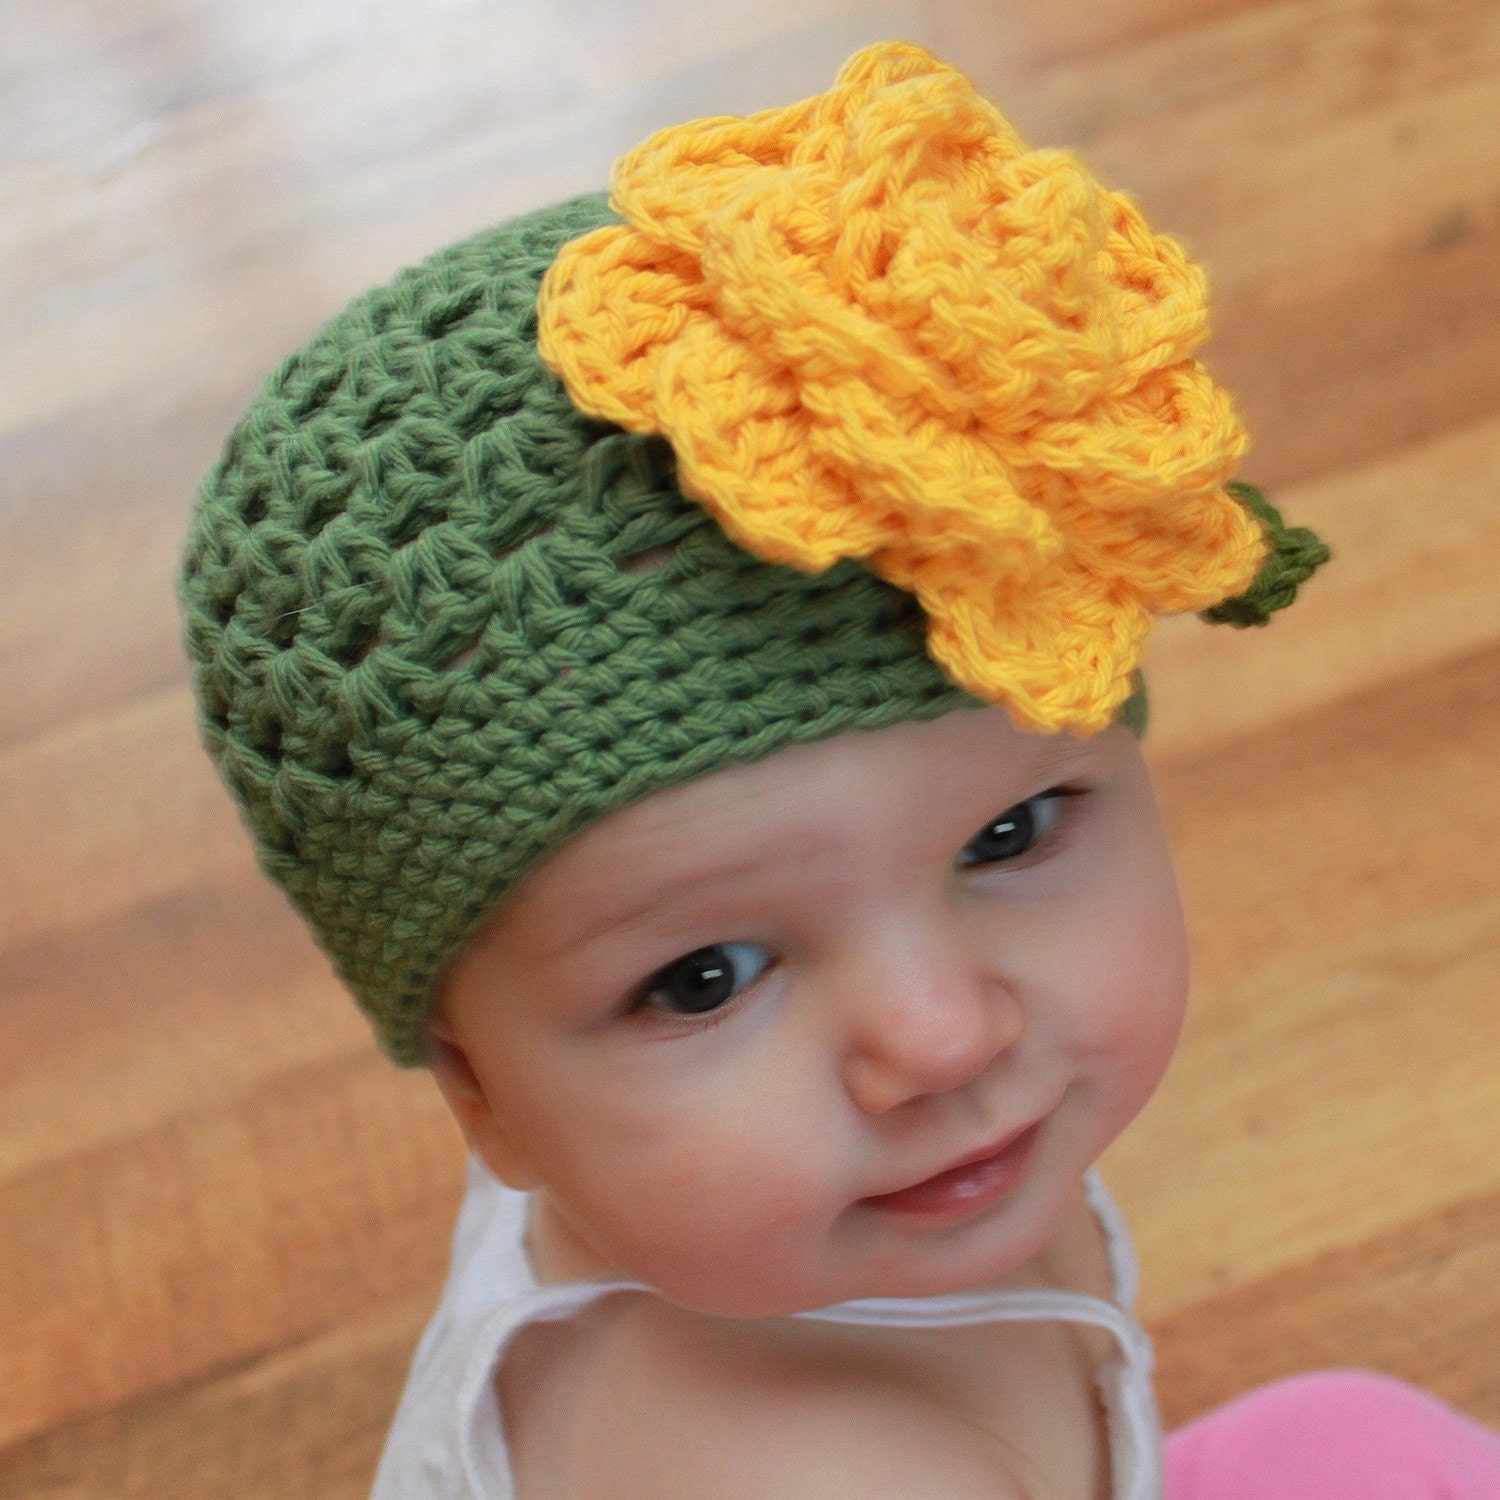 Crochet Hat Pattern Download : Instant Download Crochet Hat Pattern Jack and Jill by Mamachee